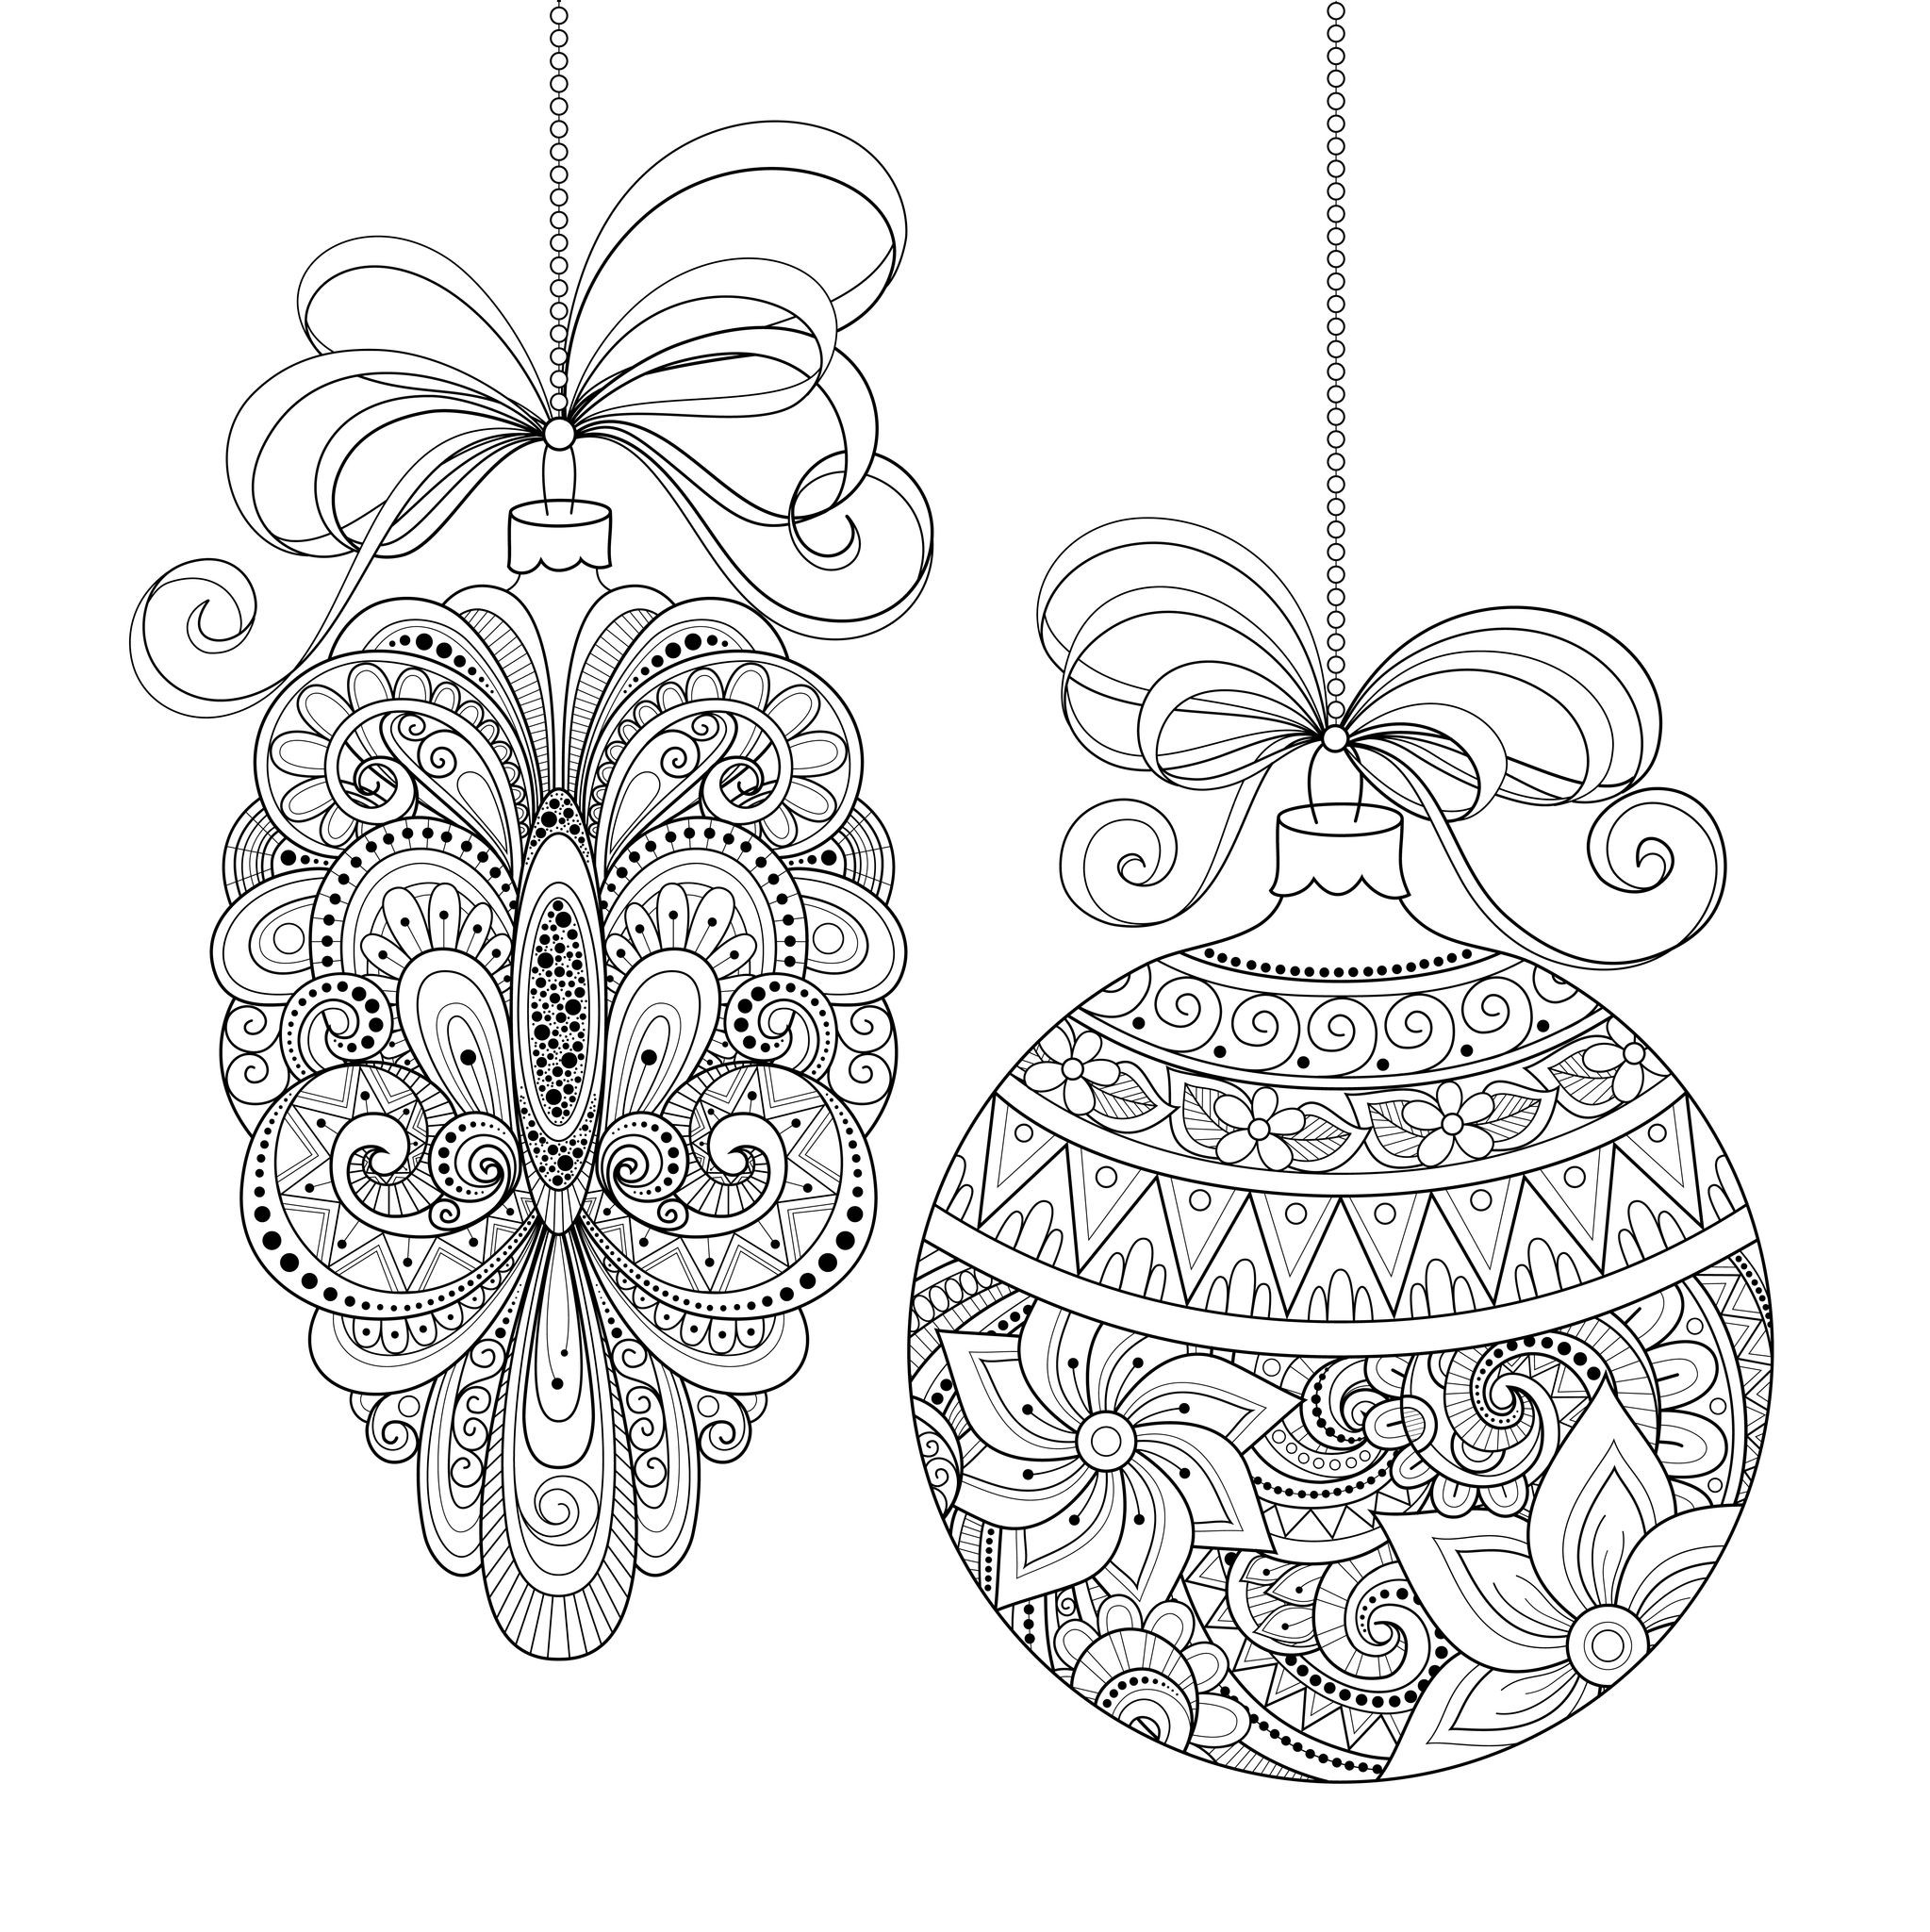 Best ideas about Adult Christmas Coloring Books . Save or Pin Christmas Coloring Pages for Adults Best Coloring Pages Now.